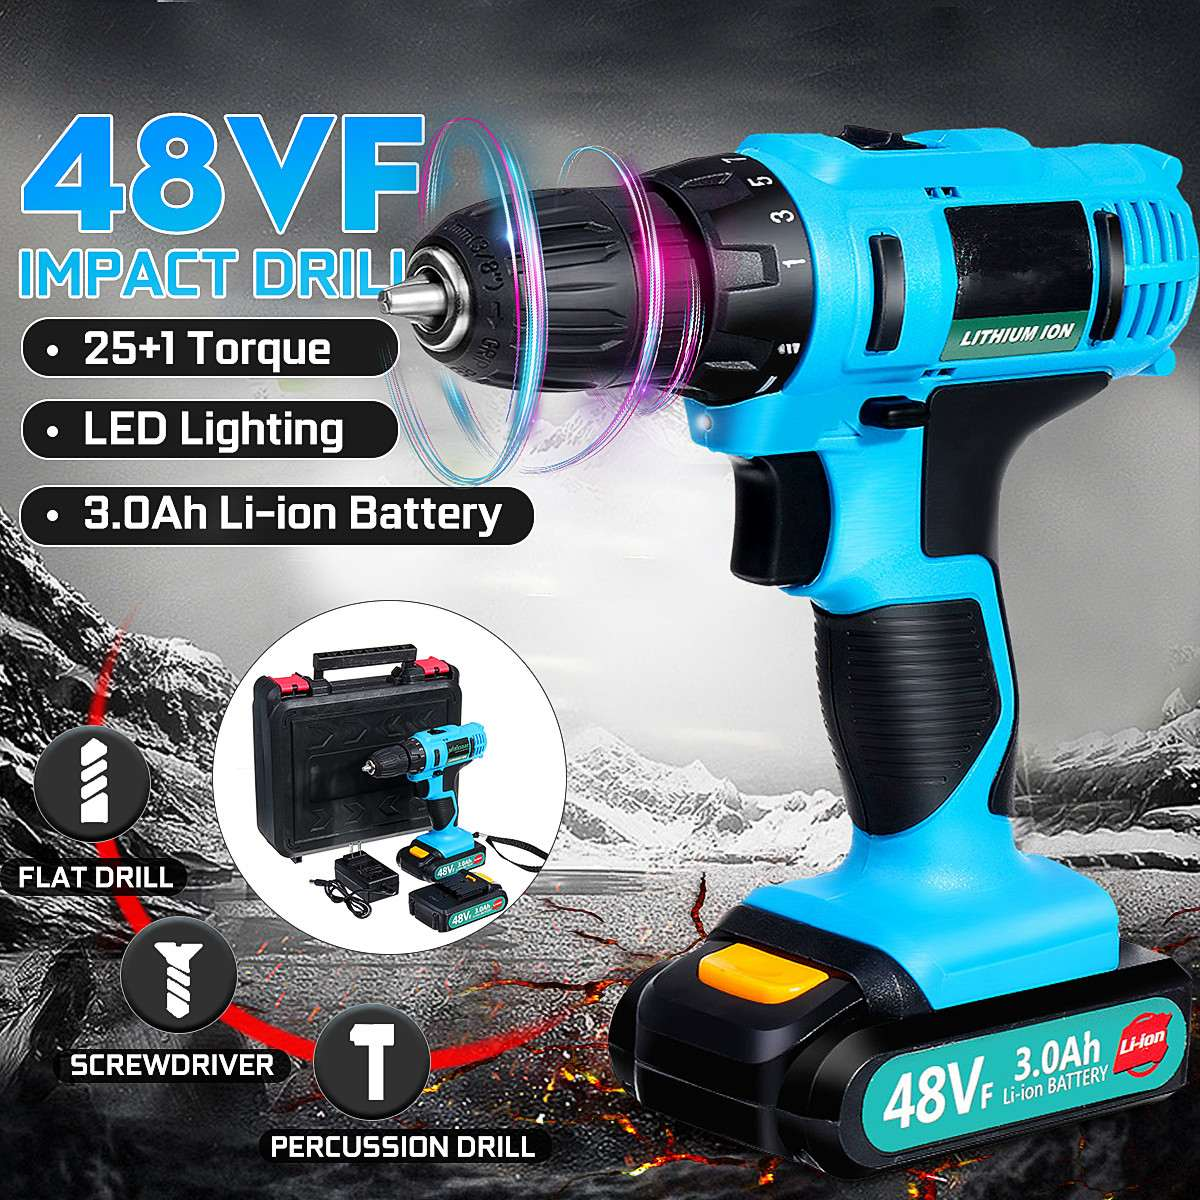 200W 48VF 21V  Electric Screwdriver Househeld Cordless 2 Speed Screwdriver With Rechargeable Battery Impact Drill Power Tool